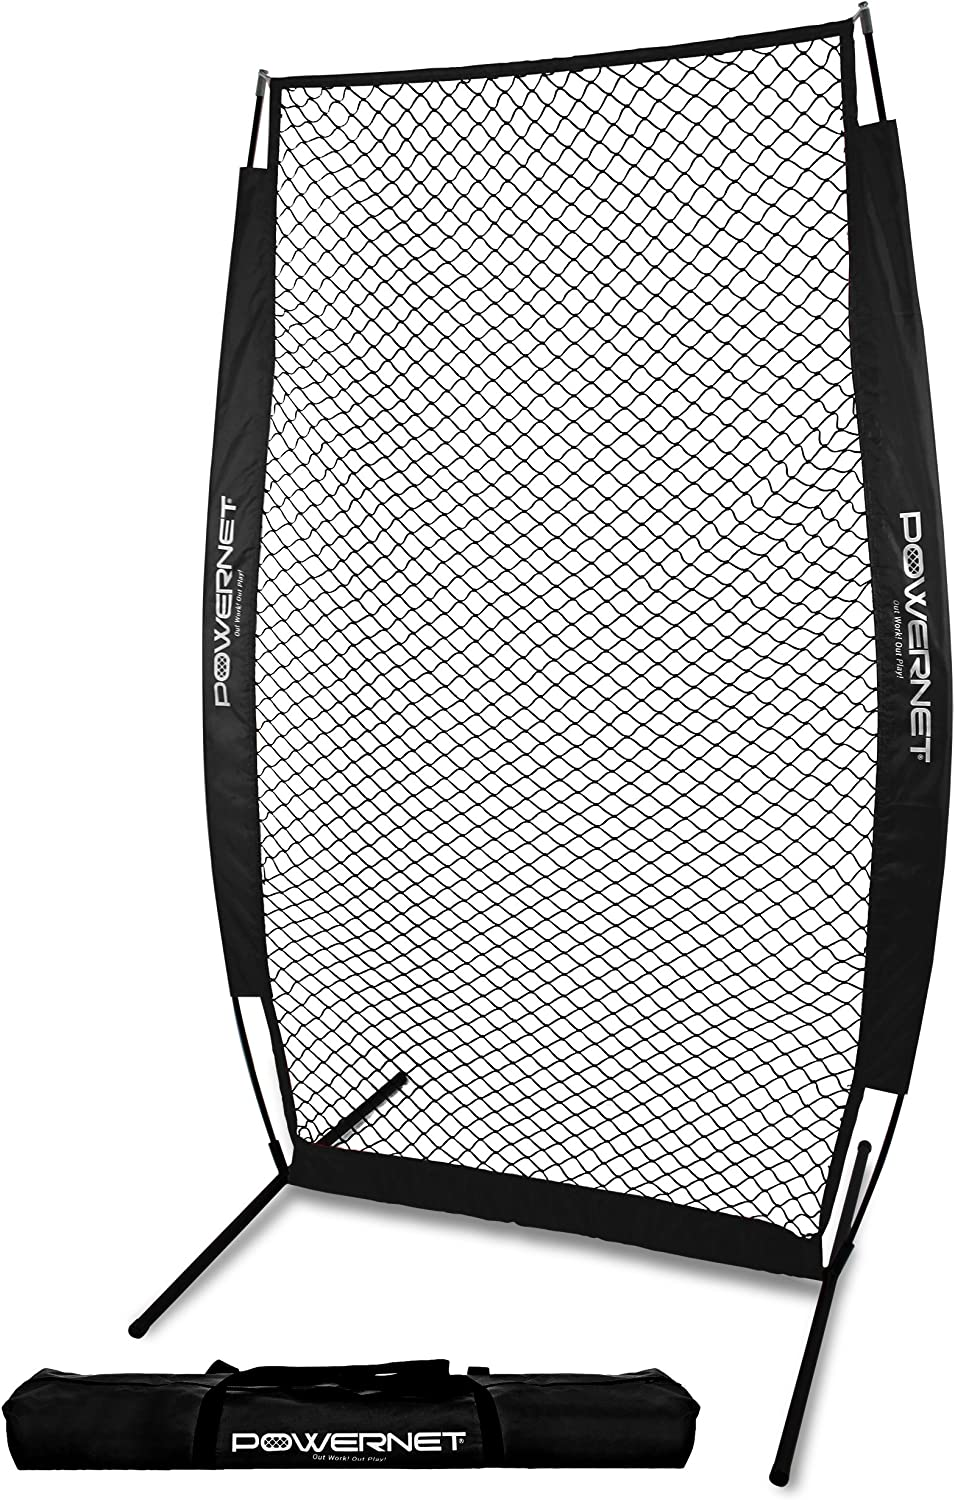 PowerNet I-Screen with Frame and Carry Bag Portable Baseball Pitcher Protection Instant Player and Coach Protector from Line Drives Grounders Heavy Duty Knottless Netting Batting Practice